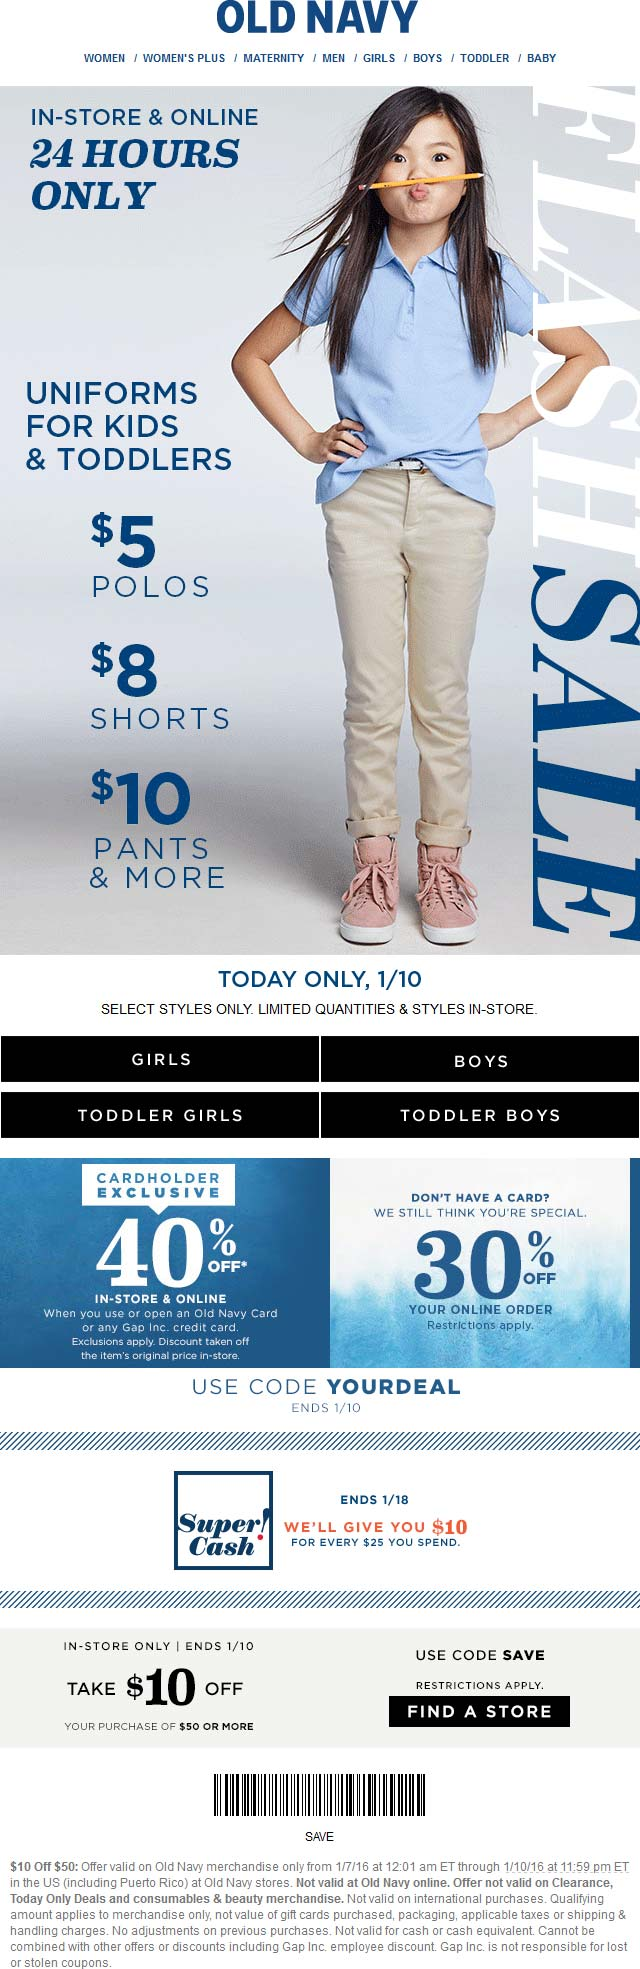 Old Navy Coupon September 2017 $10 off $50 today at Old Navy, or 30% online via promo code SAVE